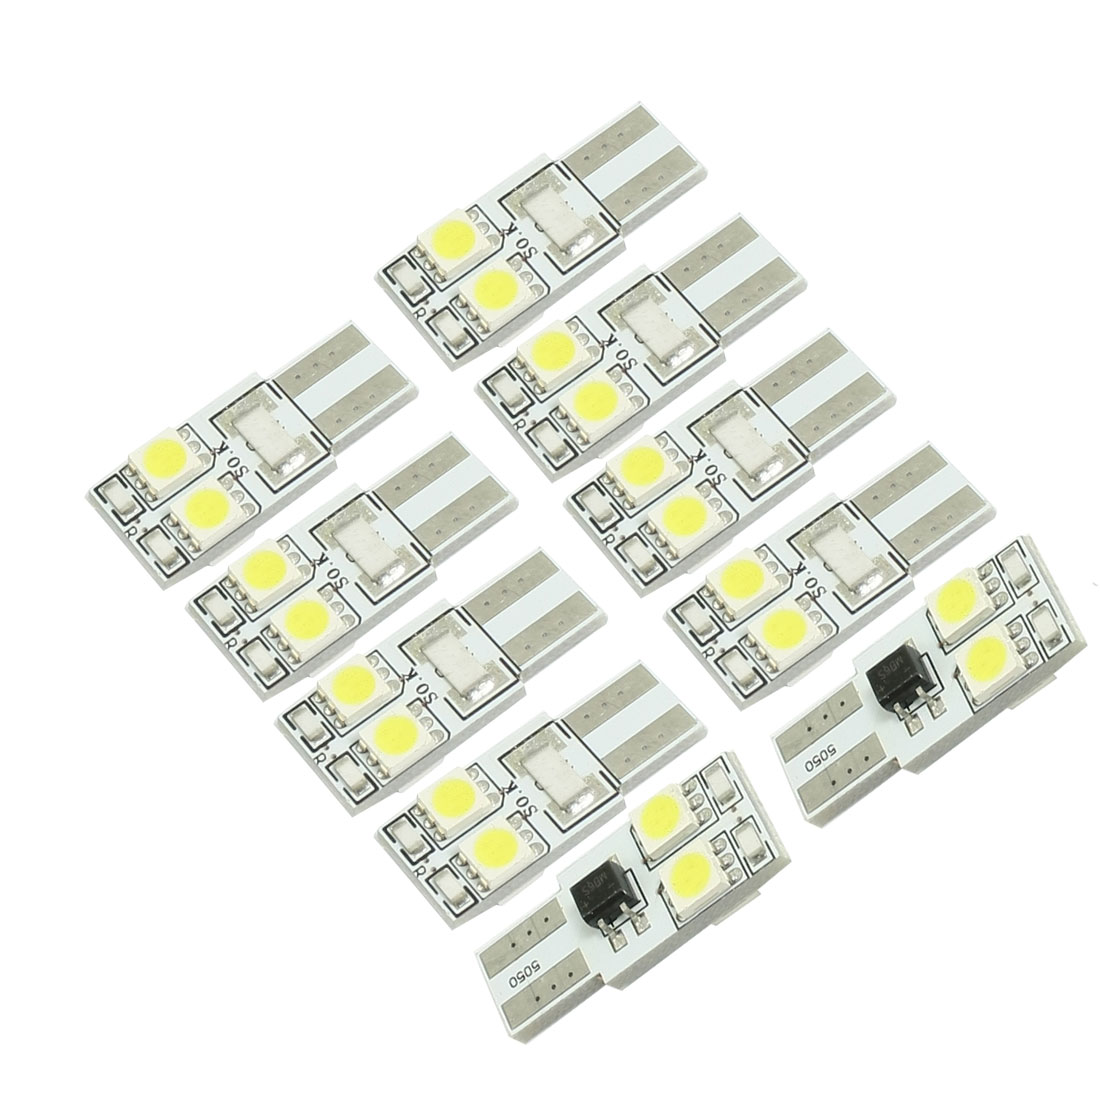 10 Pcs T10 White 5050 SMD 4-LED Canbus No Error Car LED Light DC 12V